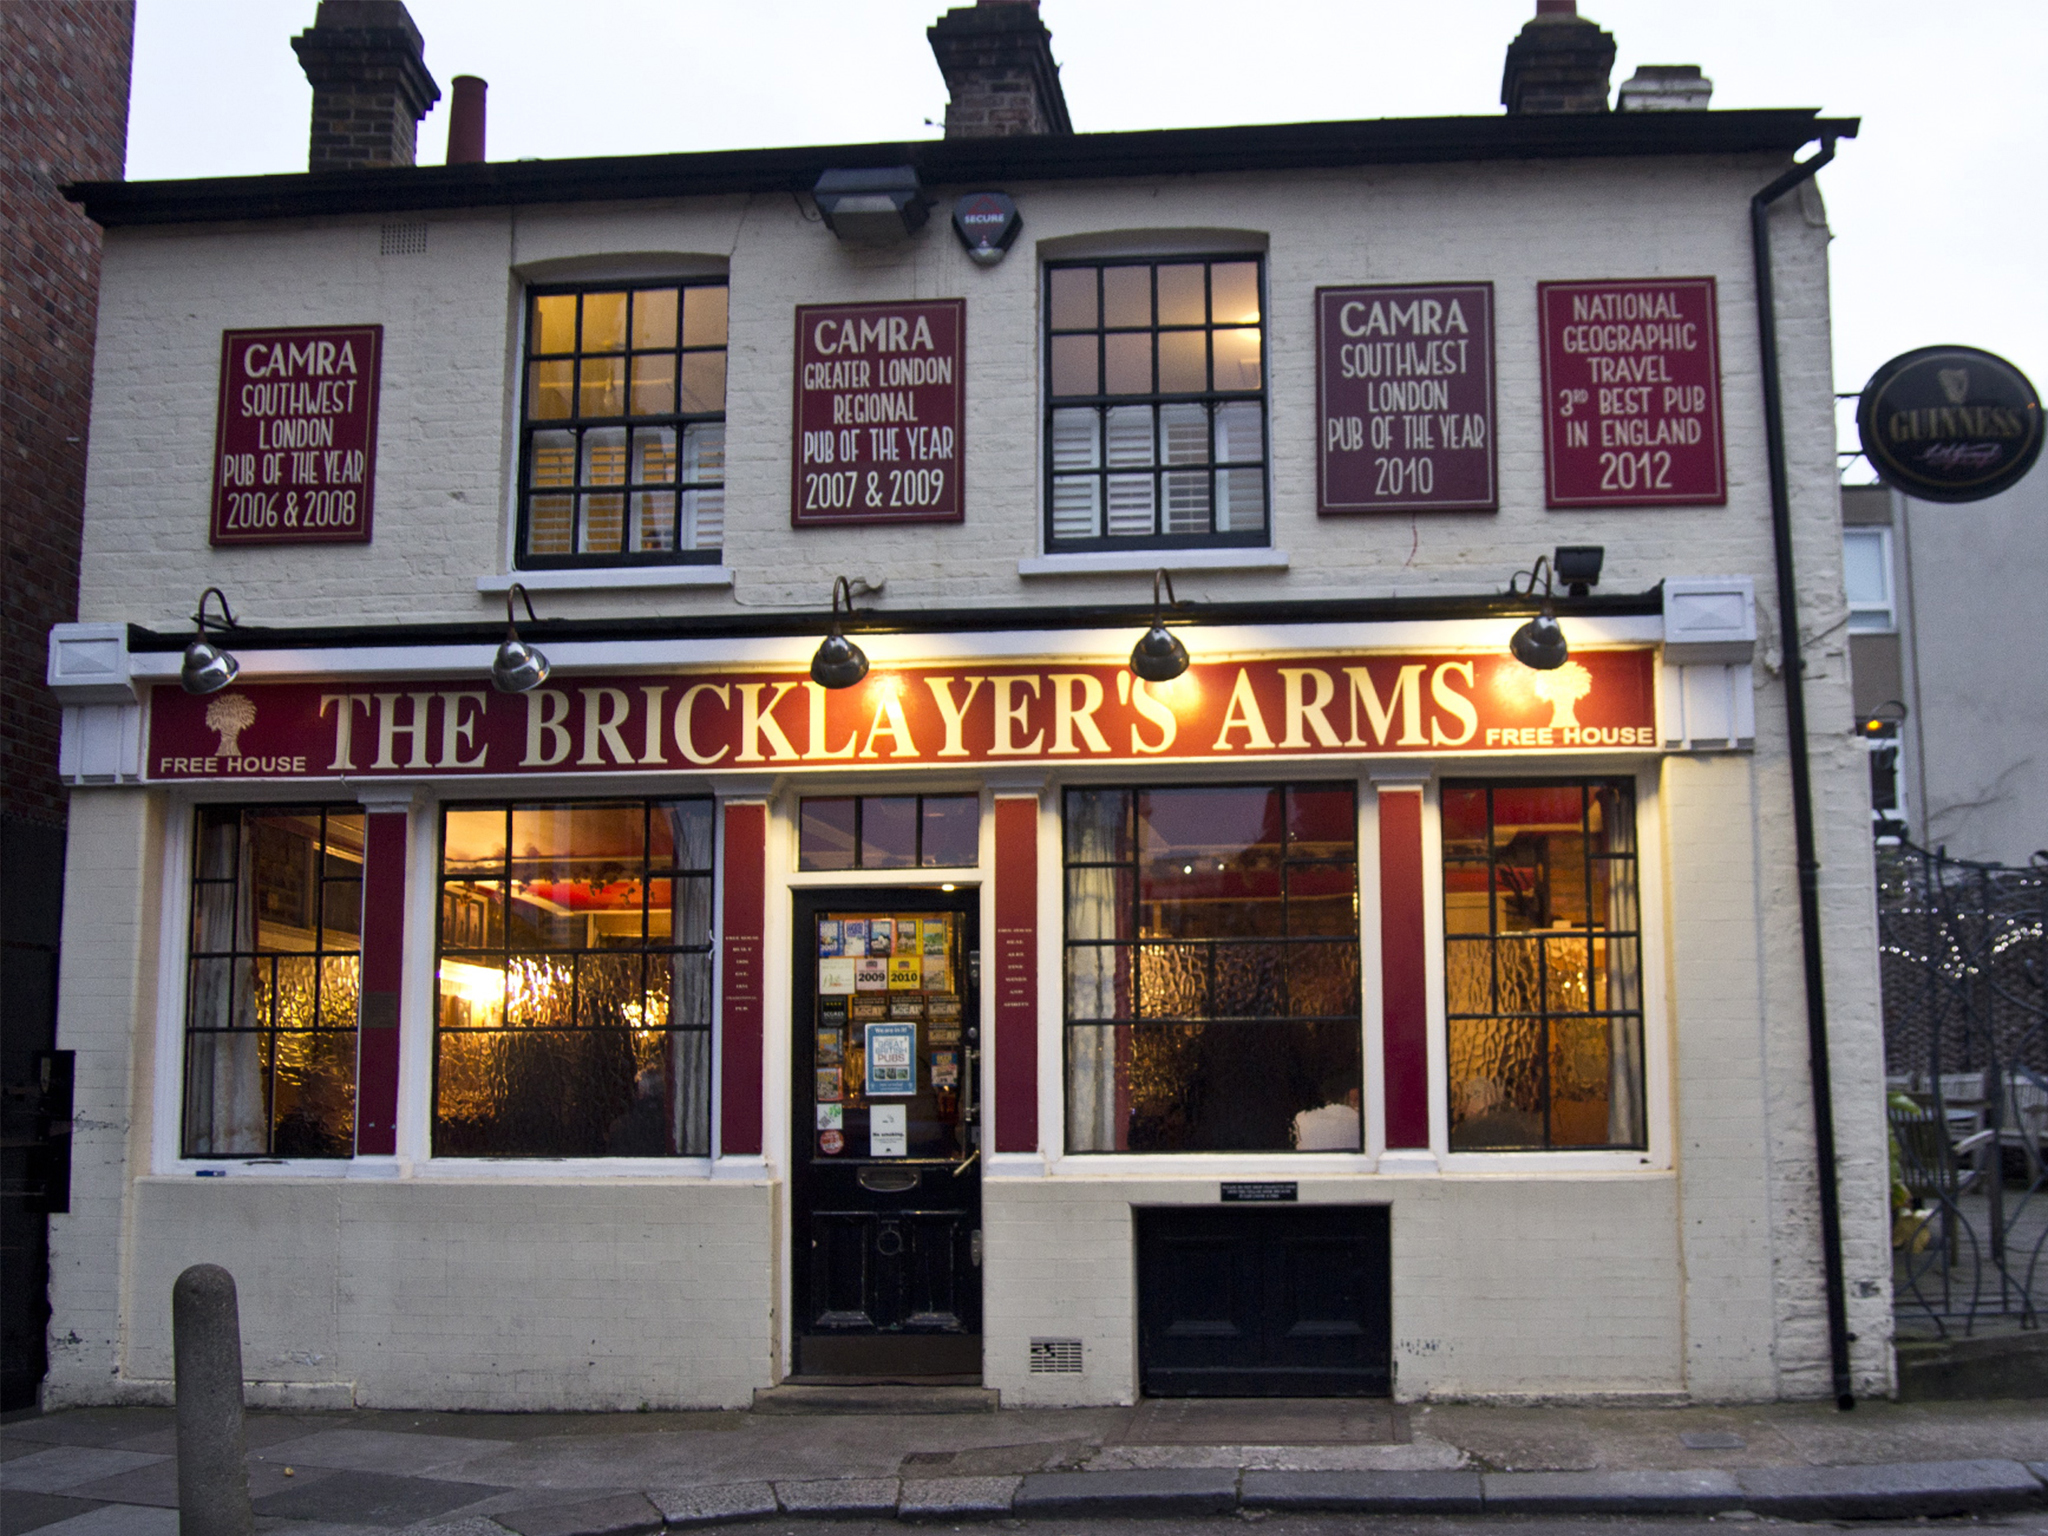 The 100 best bars and pubs in London - Bricklayer's Arms, Putney